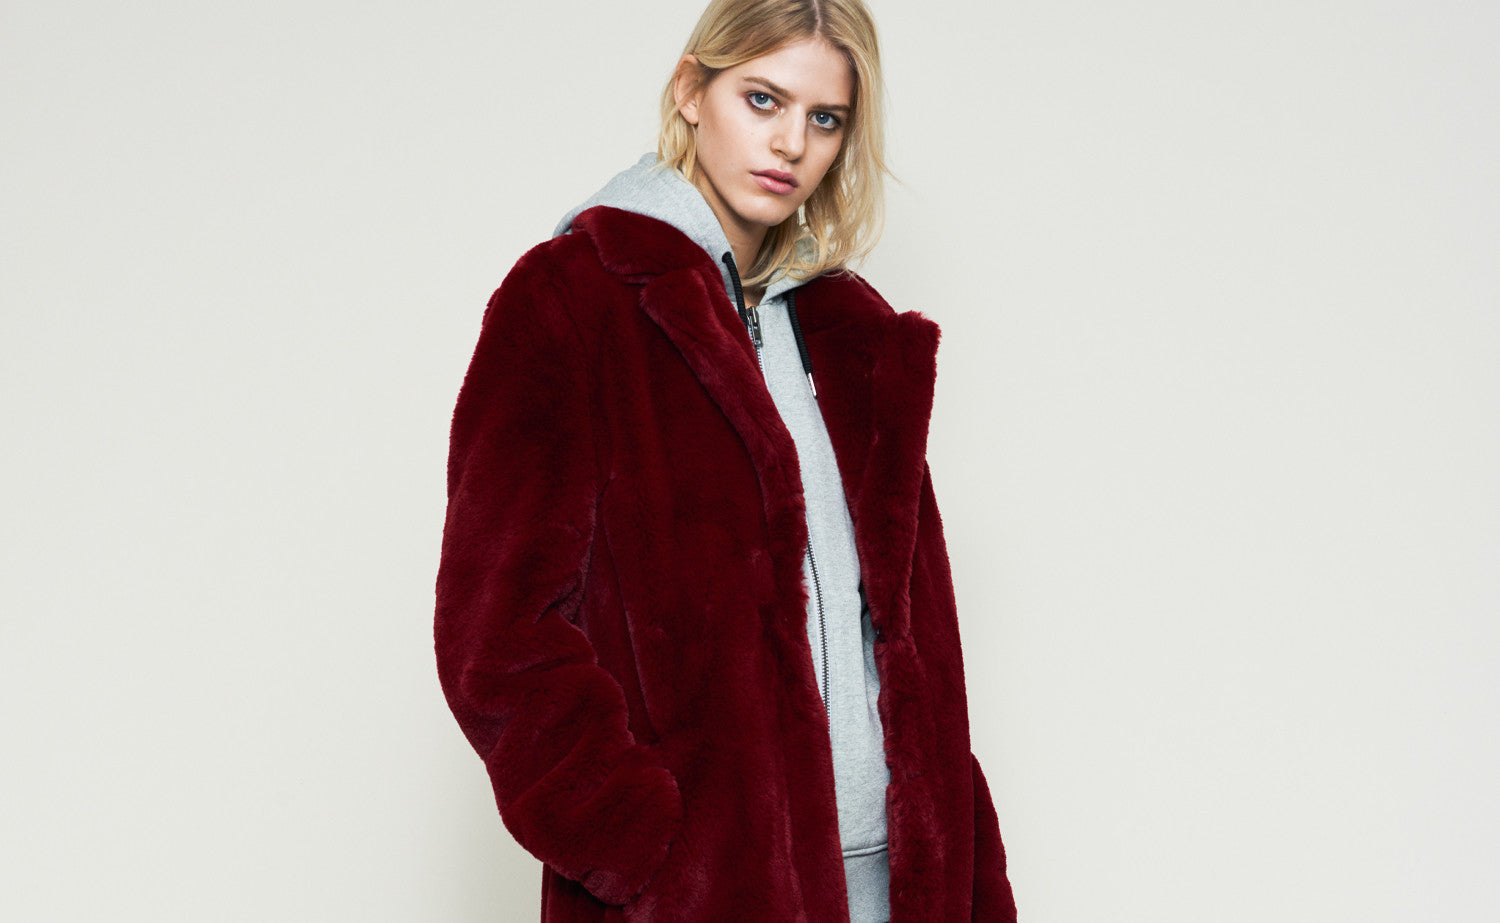 Gestuz - Danish Contemporaery Premium Brand - AW17 Collection Dehla Faxu Fur Burgundy Long Coat - Studio B Fashion - Find something different. B unique. B you.